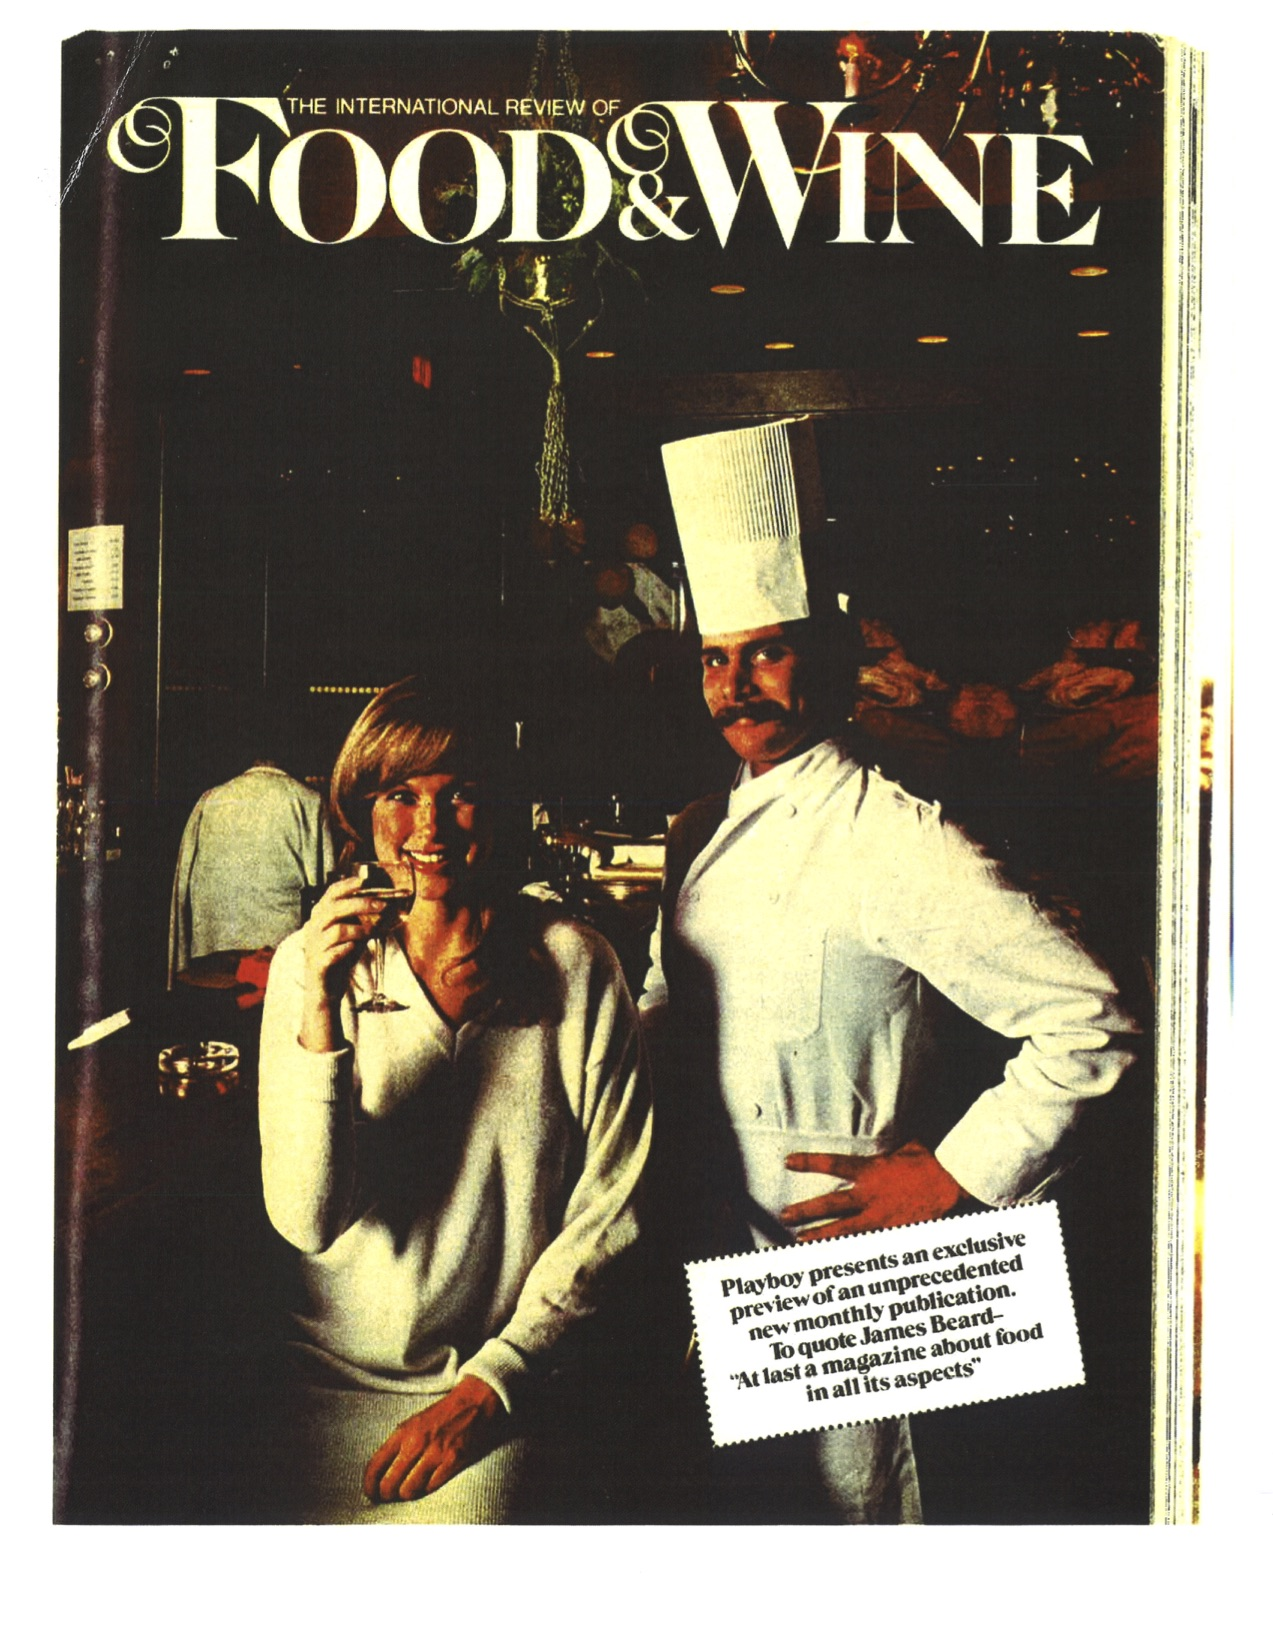 playboy-food-wine-march-1978-2-blog0917.jpg